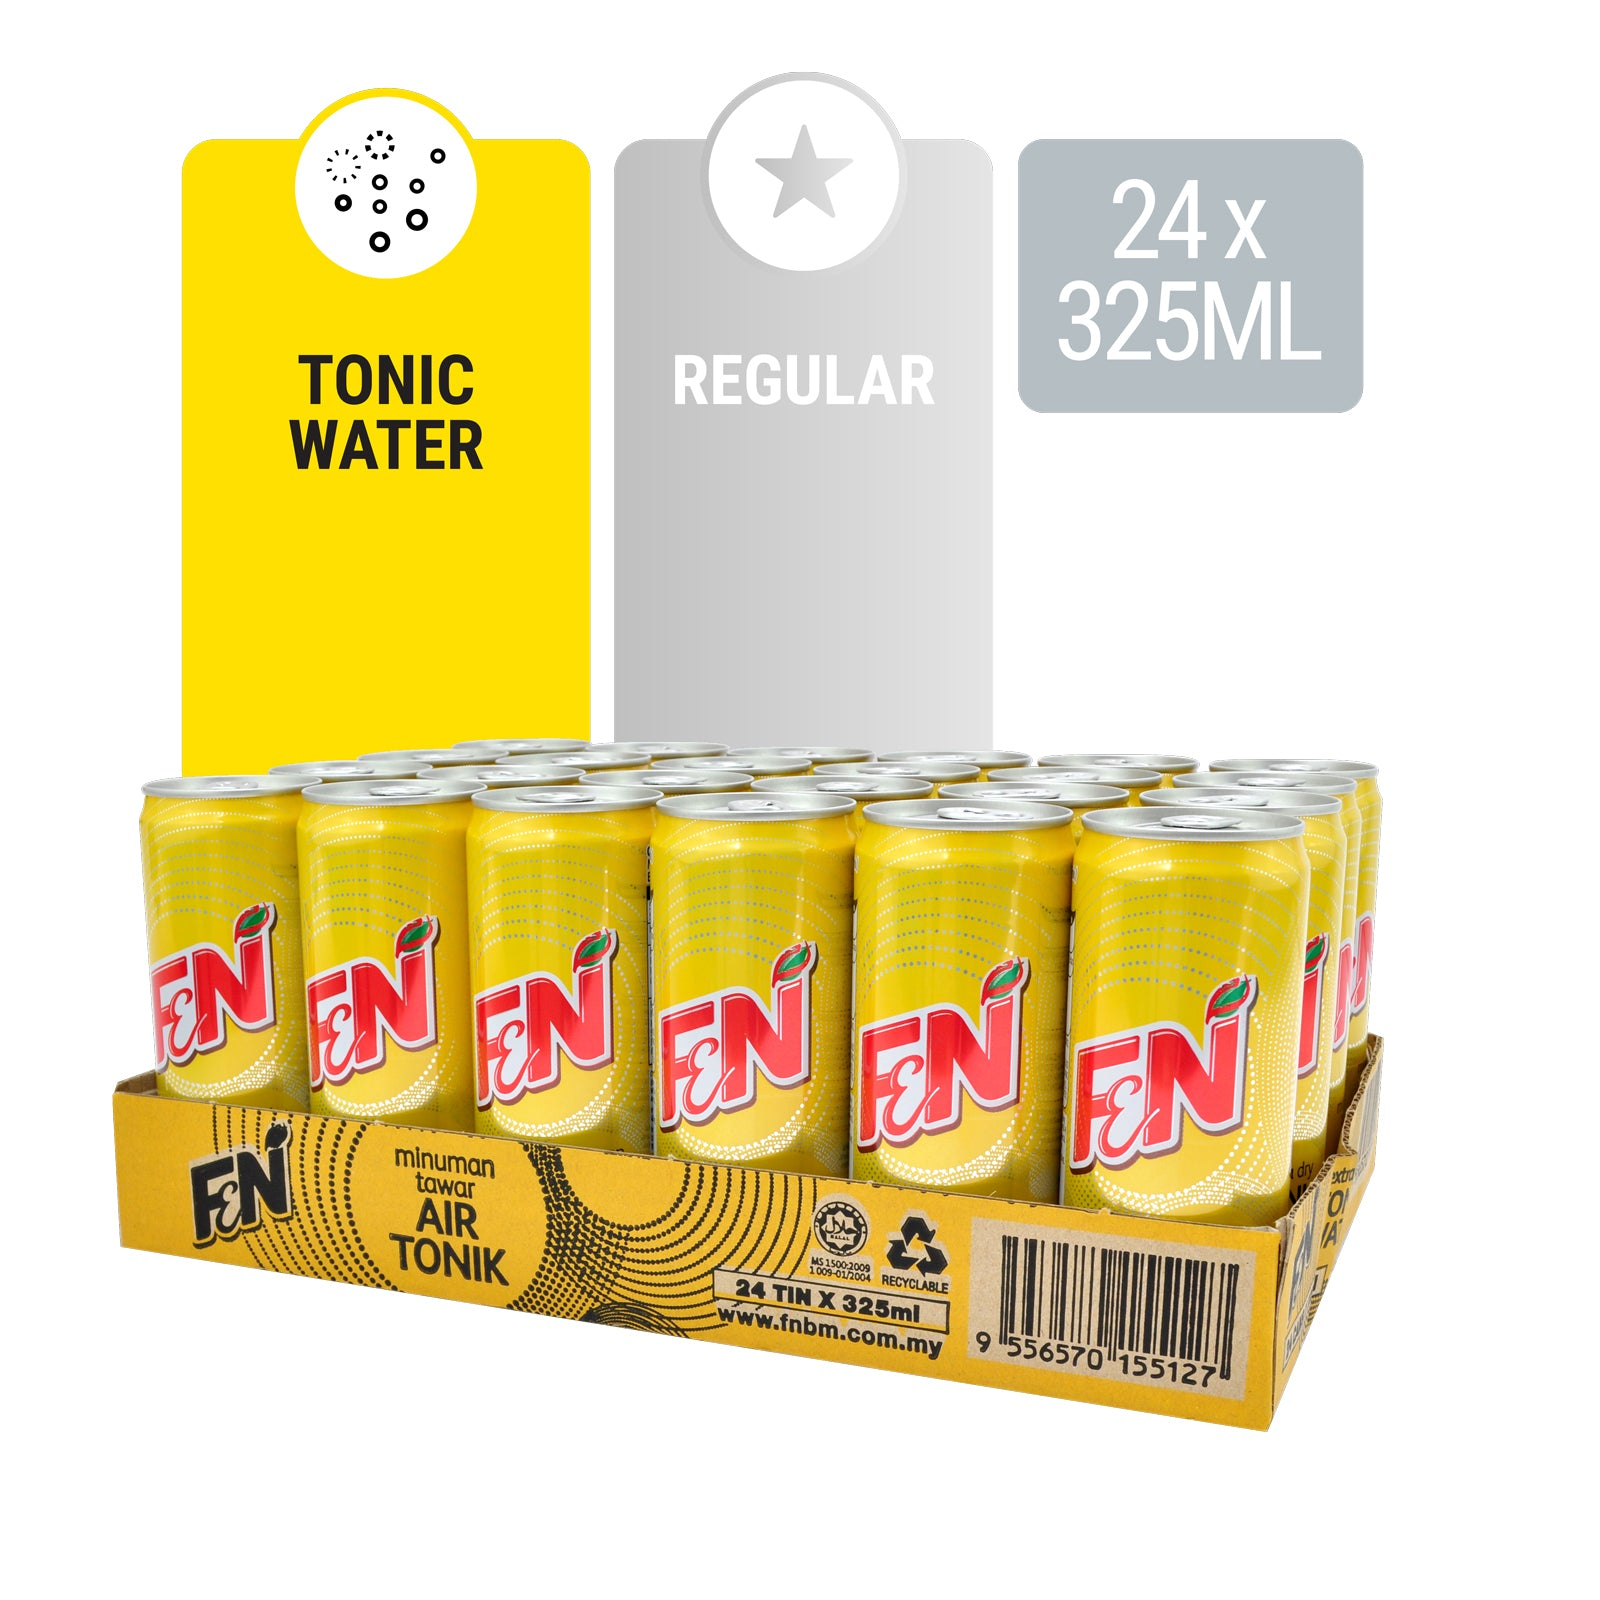 14663-F&N Tonic Water 325ml x 24